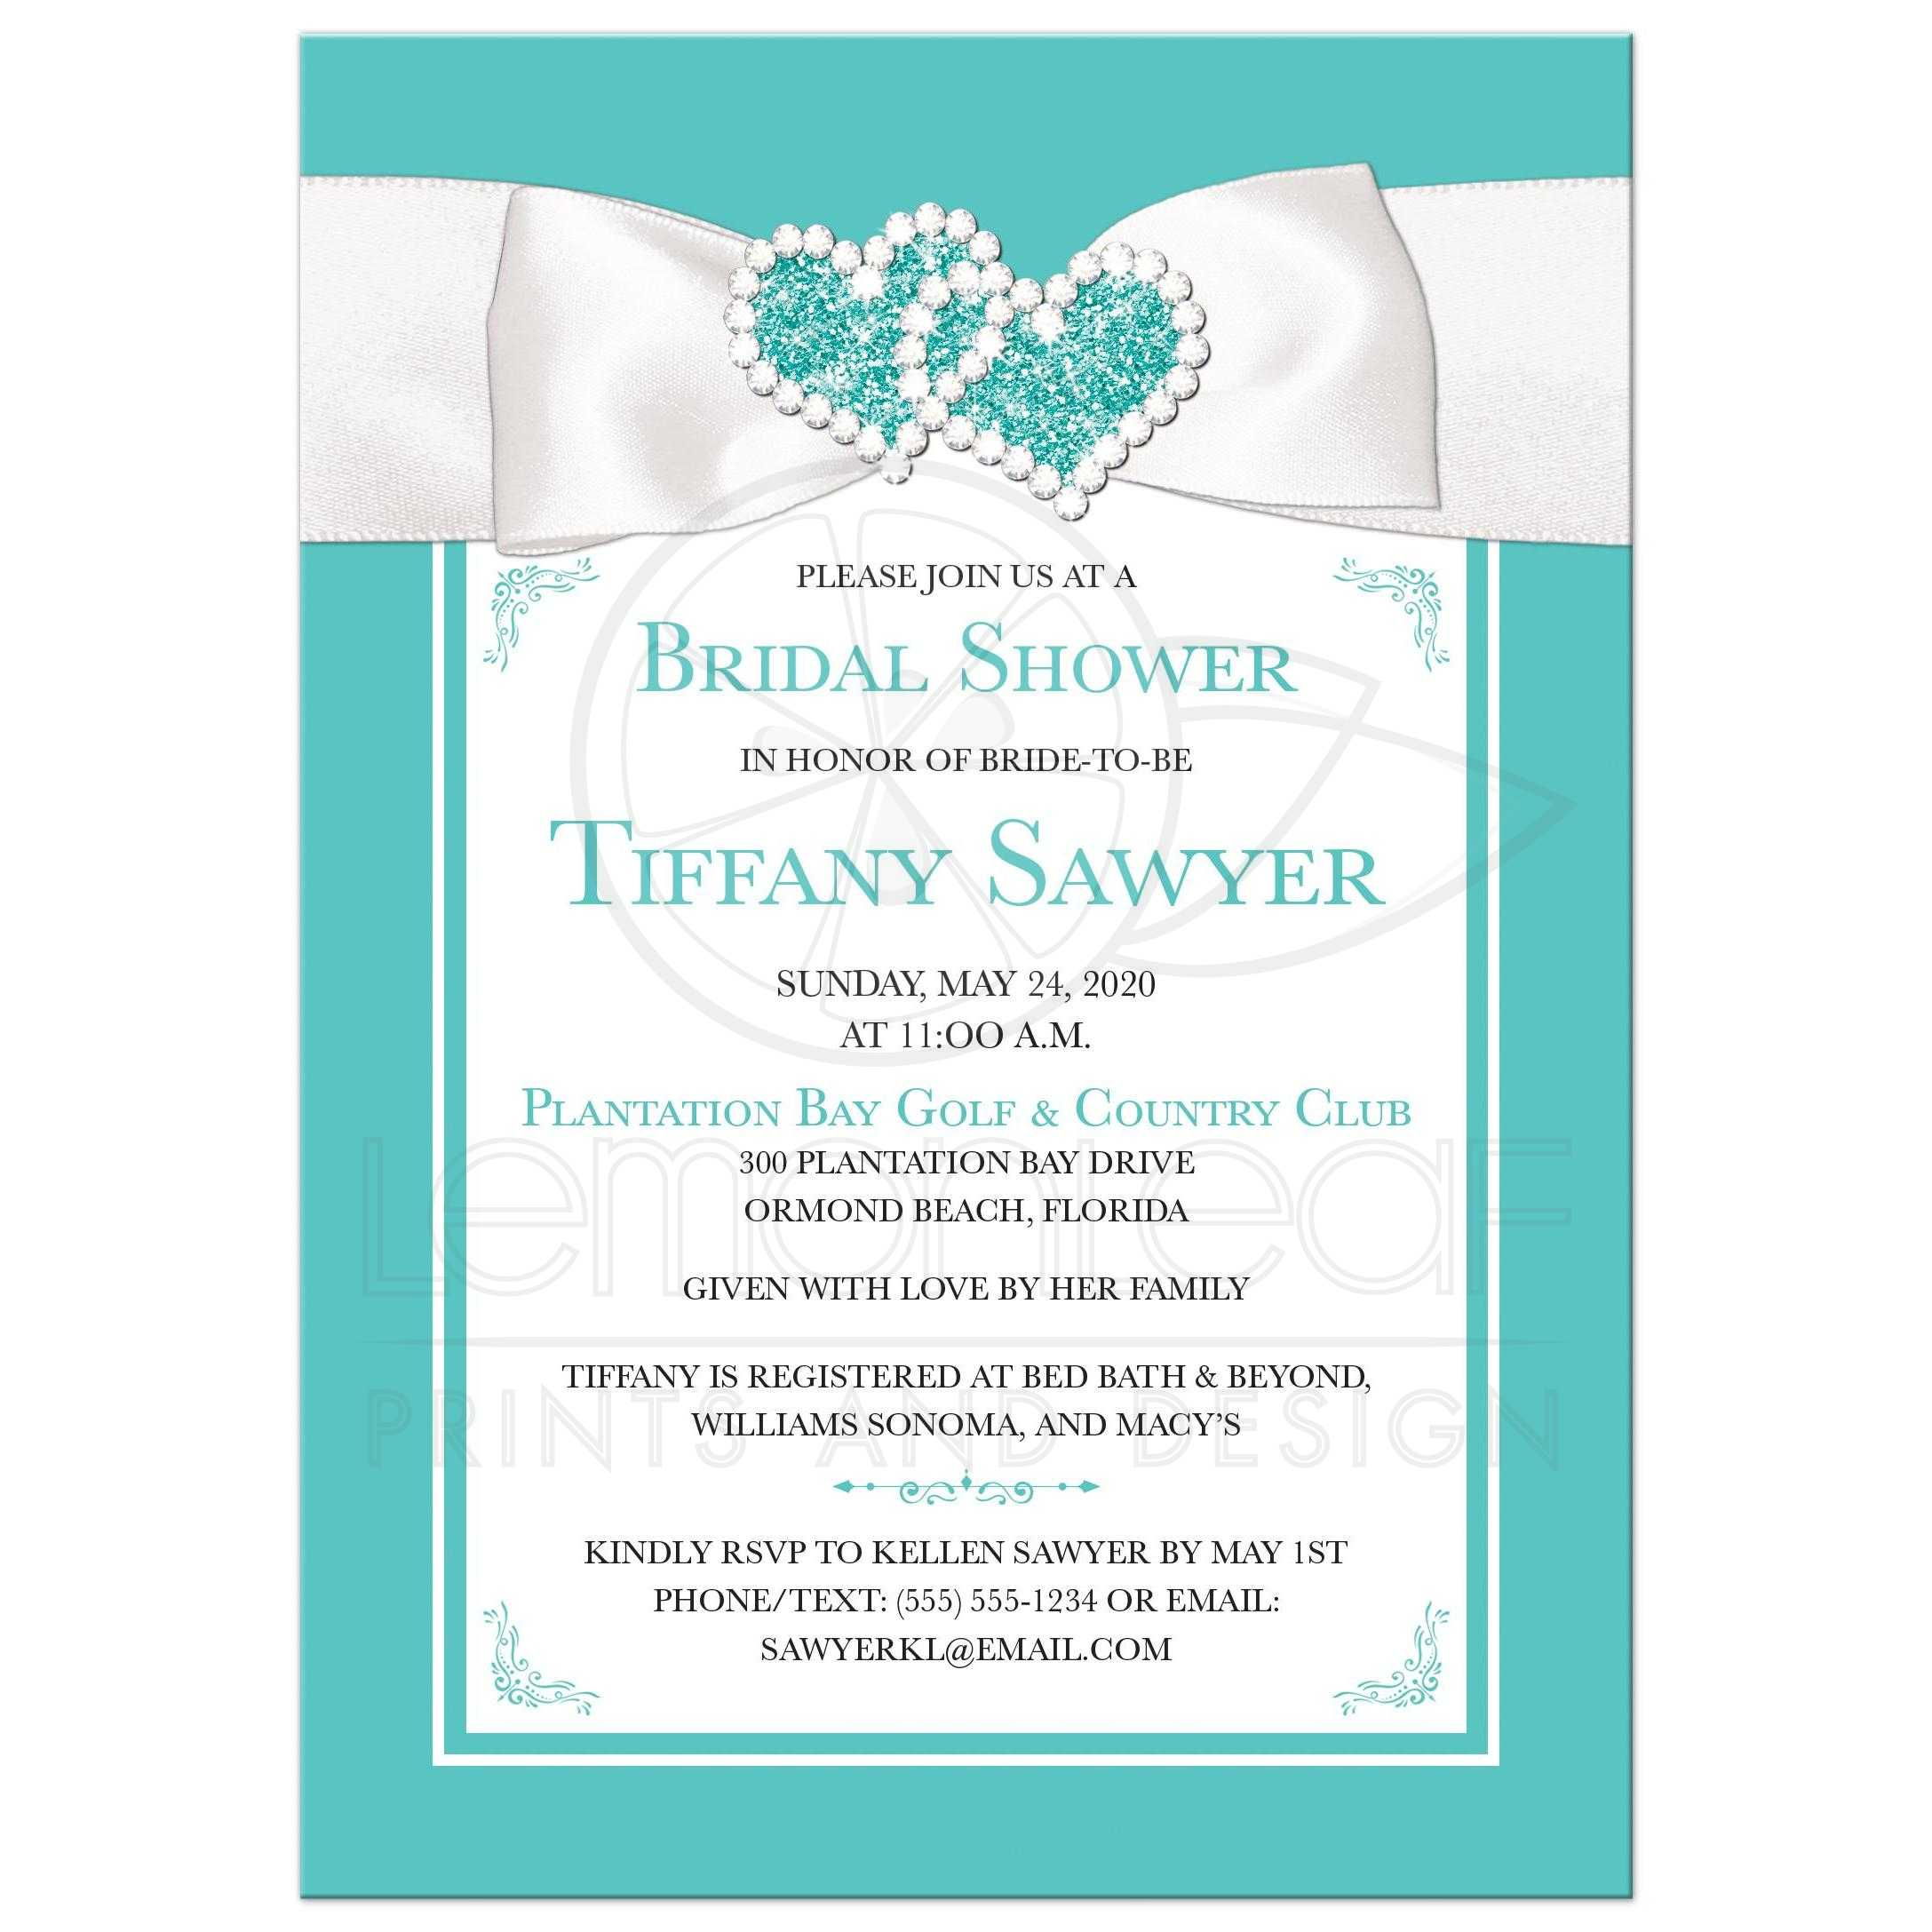 Wedding Shower Invitations.Lux Teal Blue And White Bridal Shower Invite Printed On Bling Bow